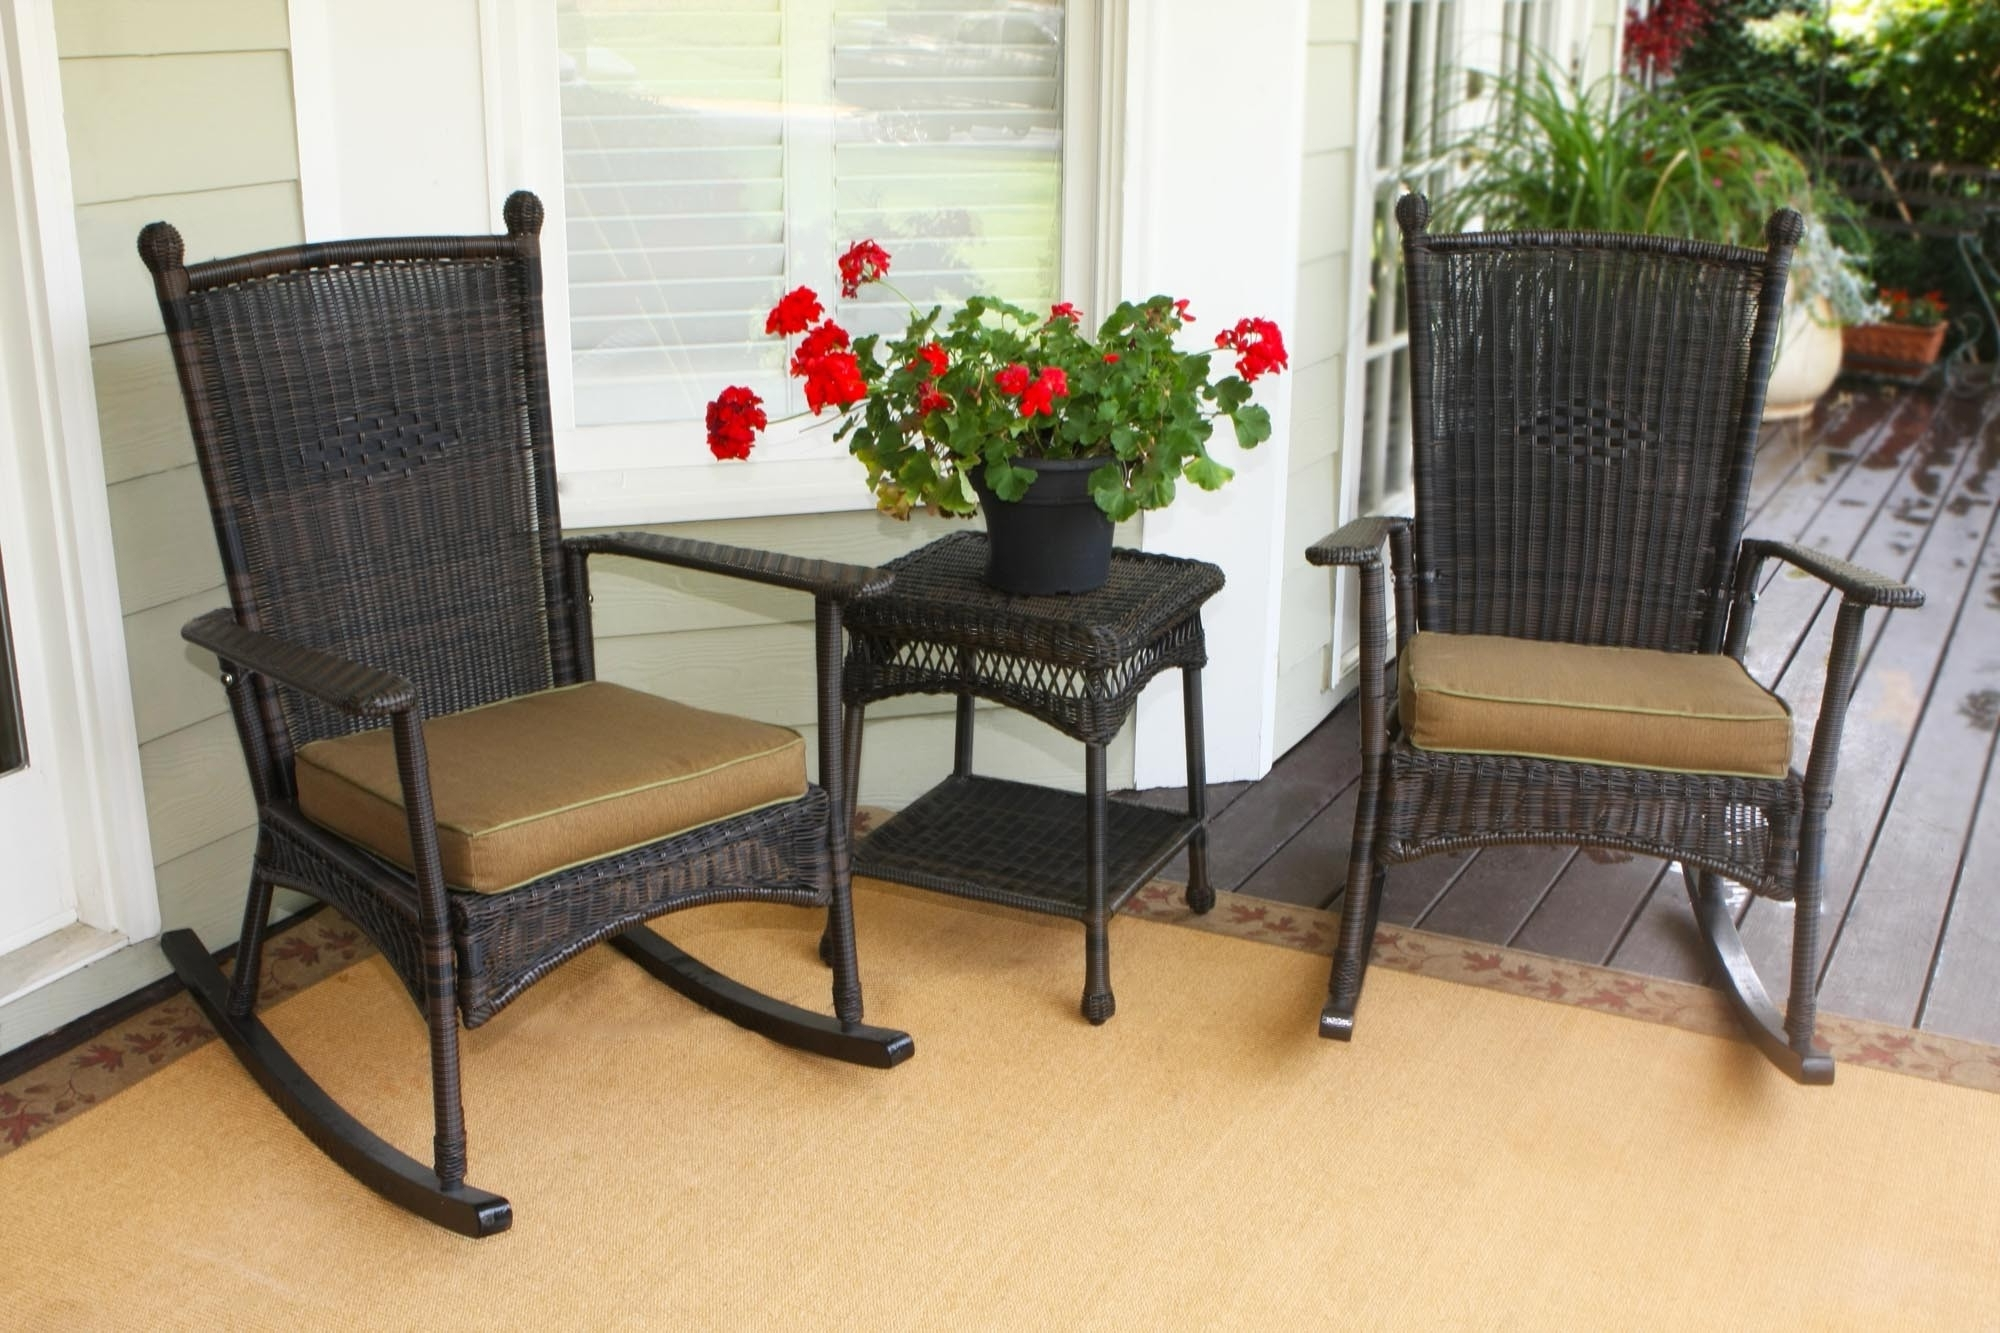 Rocking Chairs – Tortuga Outdoor Of Georgia – Alpharetta In Most Recently Released Wicker Rocking Chairs And Ottoman (View 14 of 20)